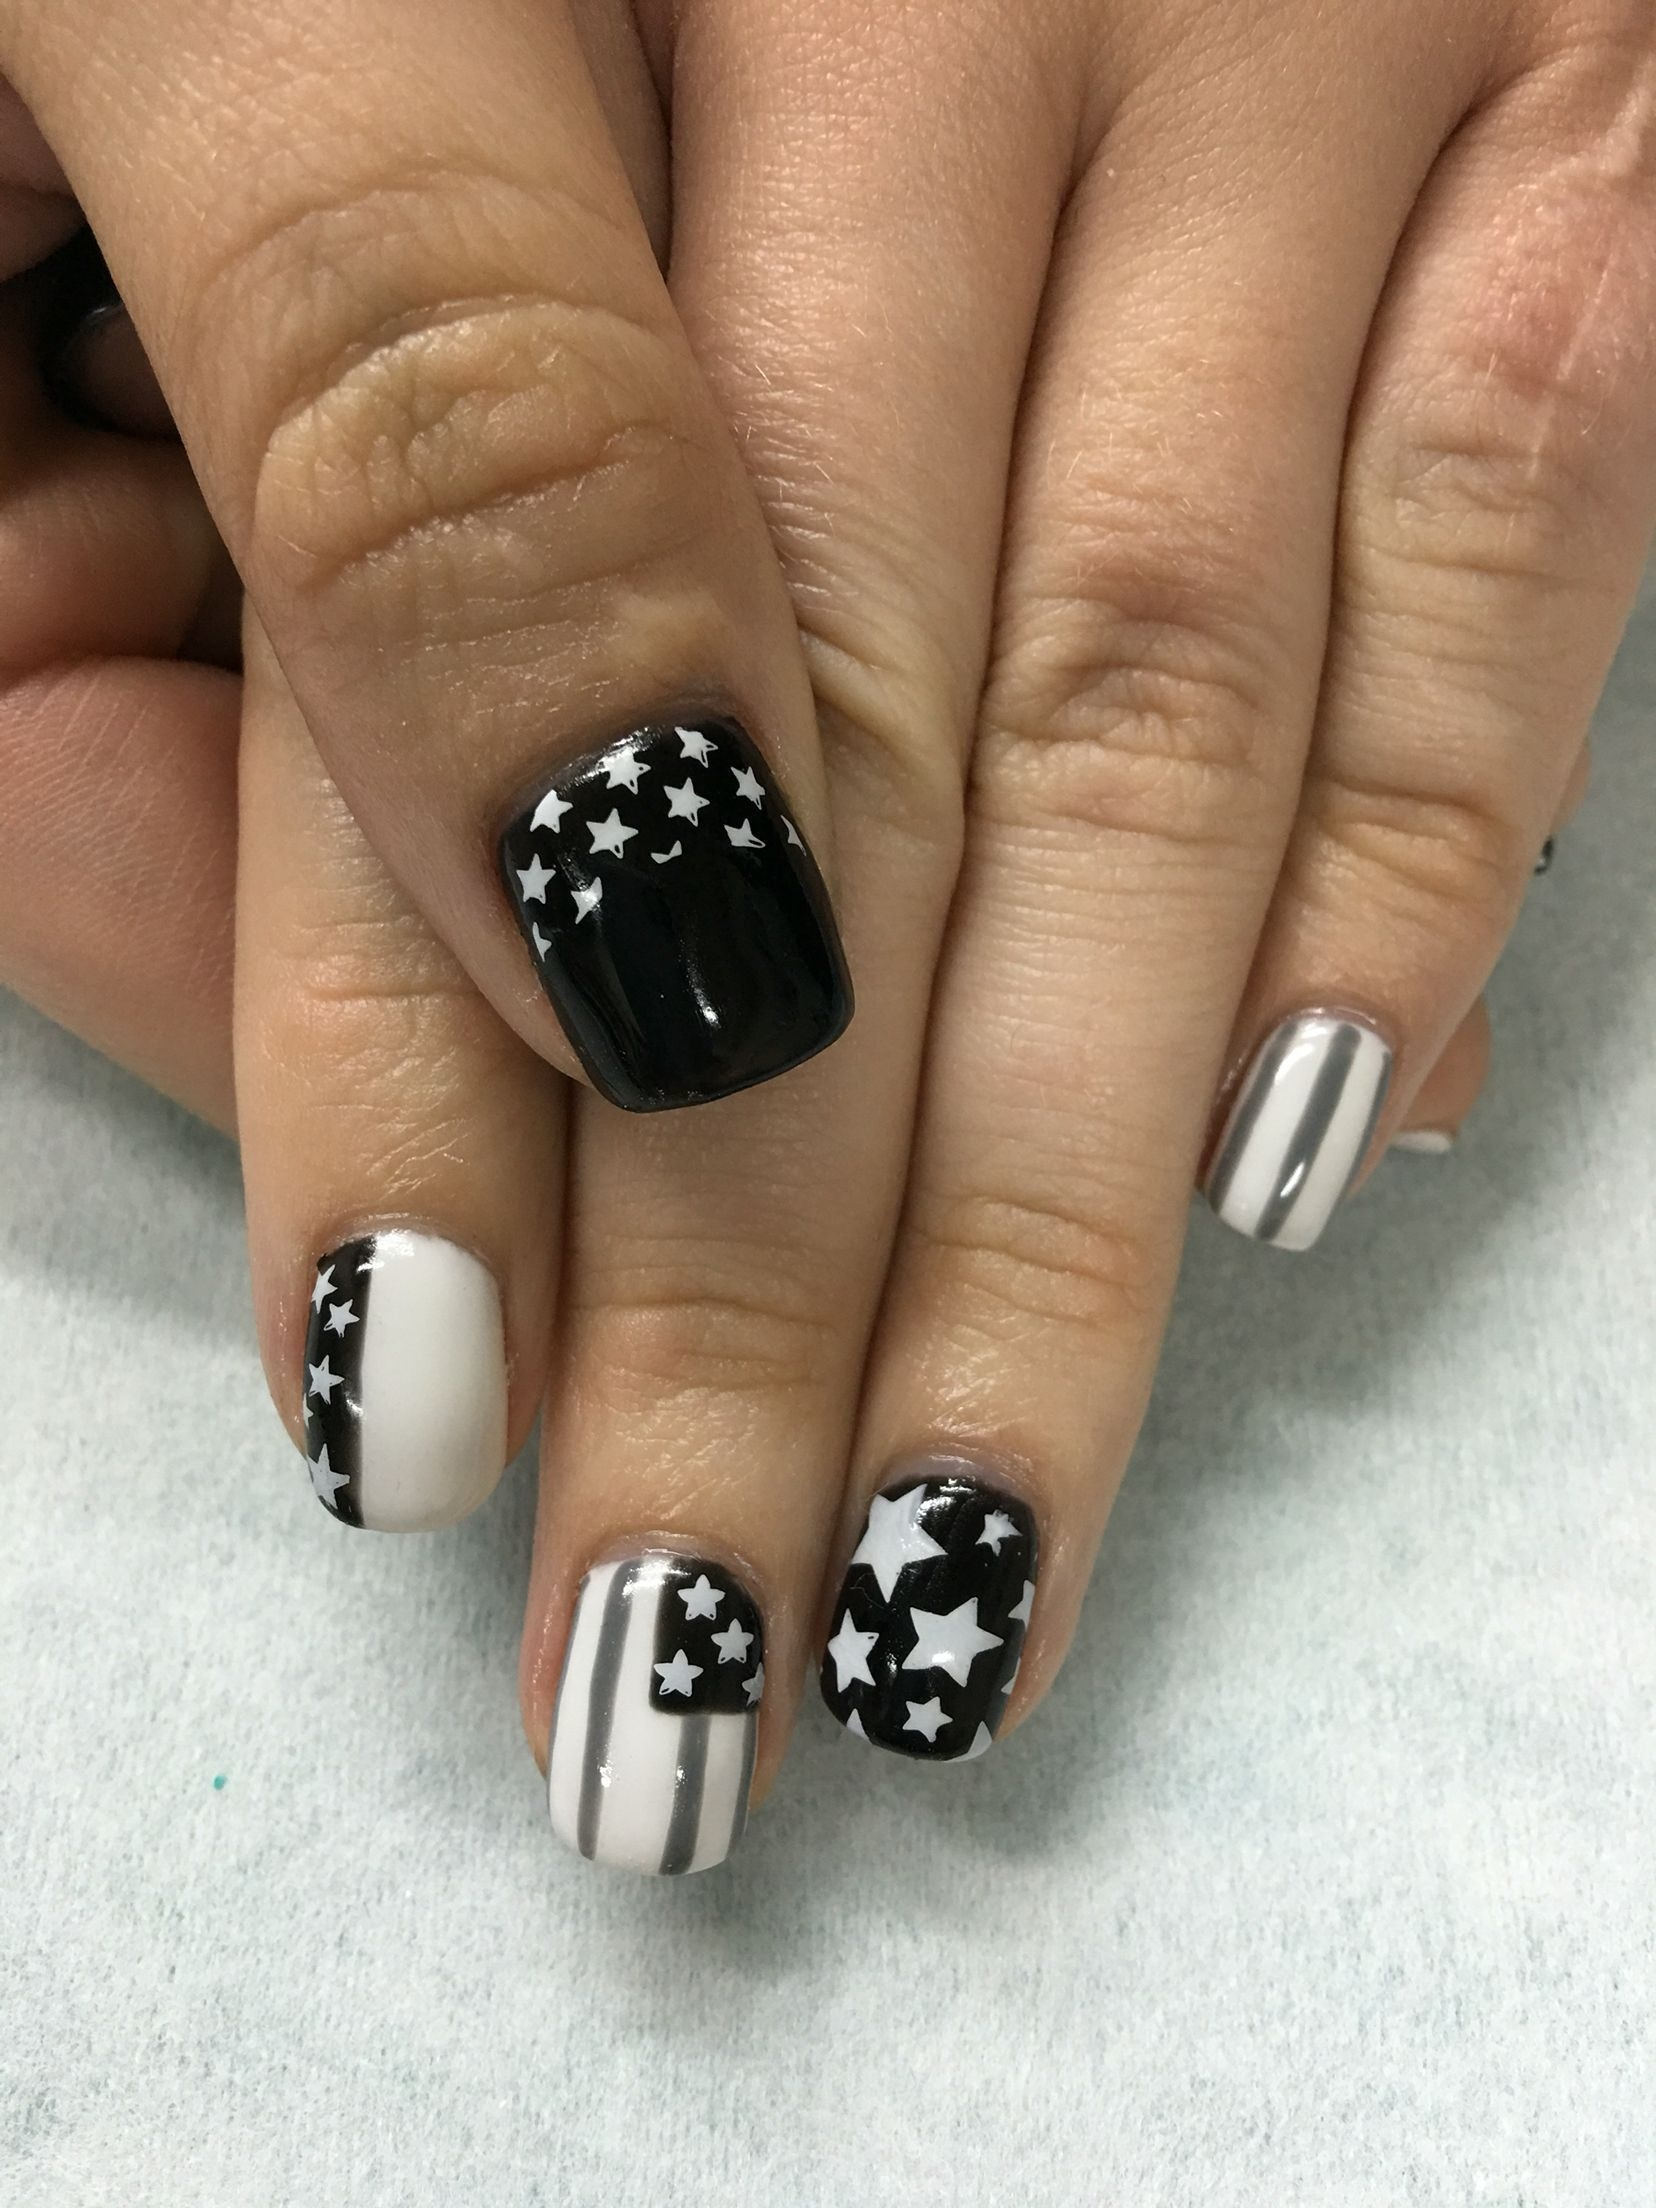 Super short nail design with black and gray gel colors with Swarovski black diamonds